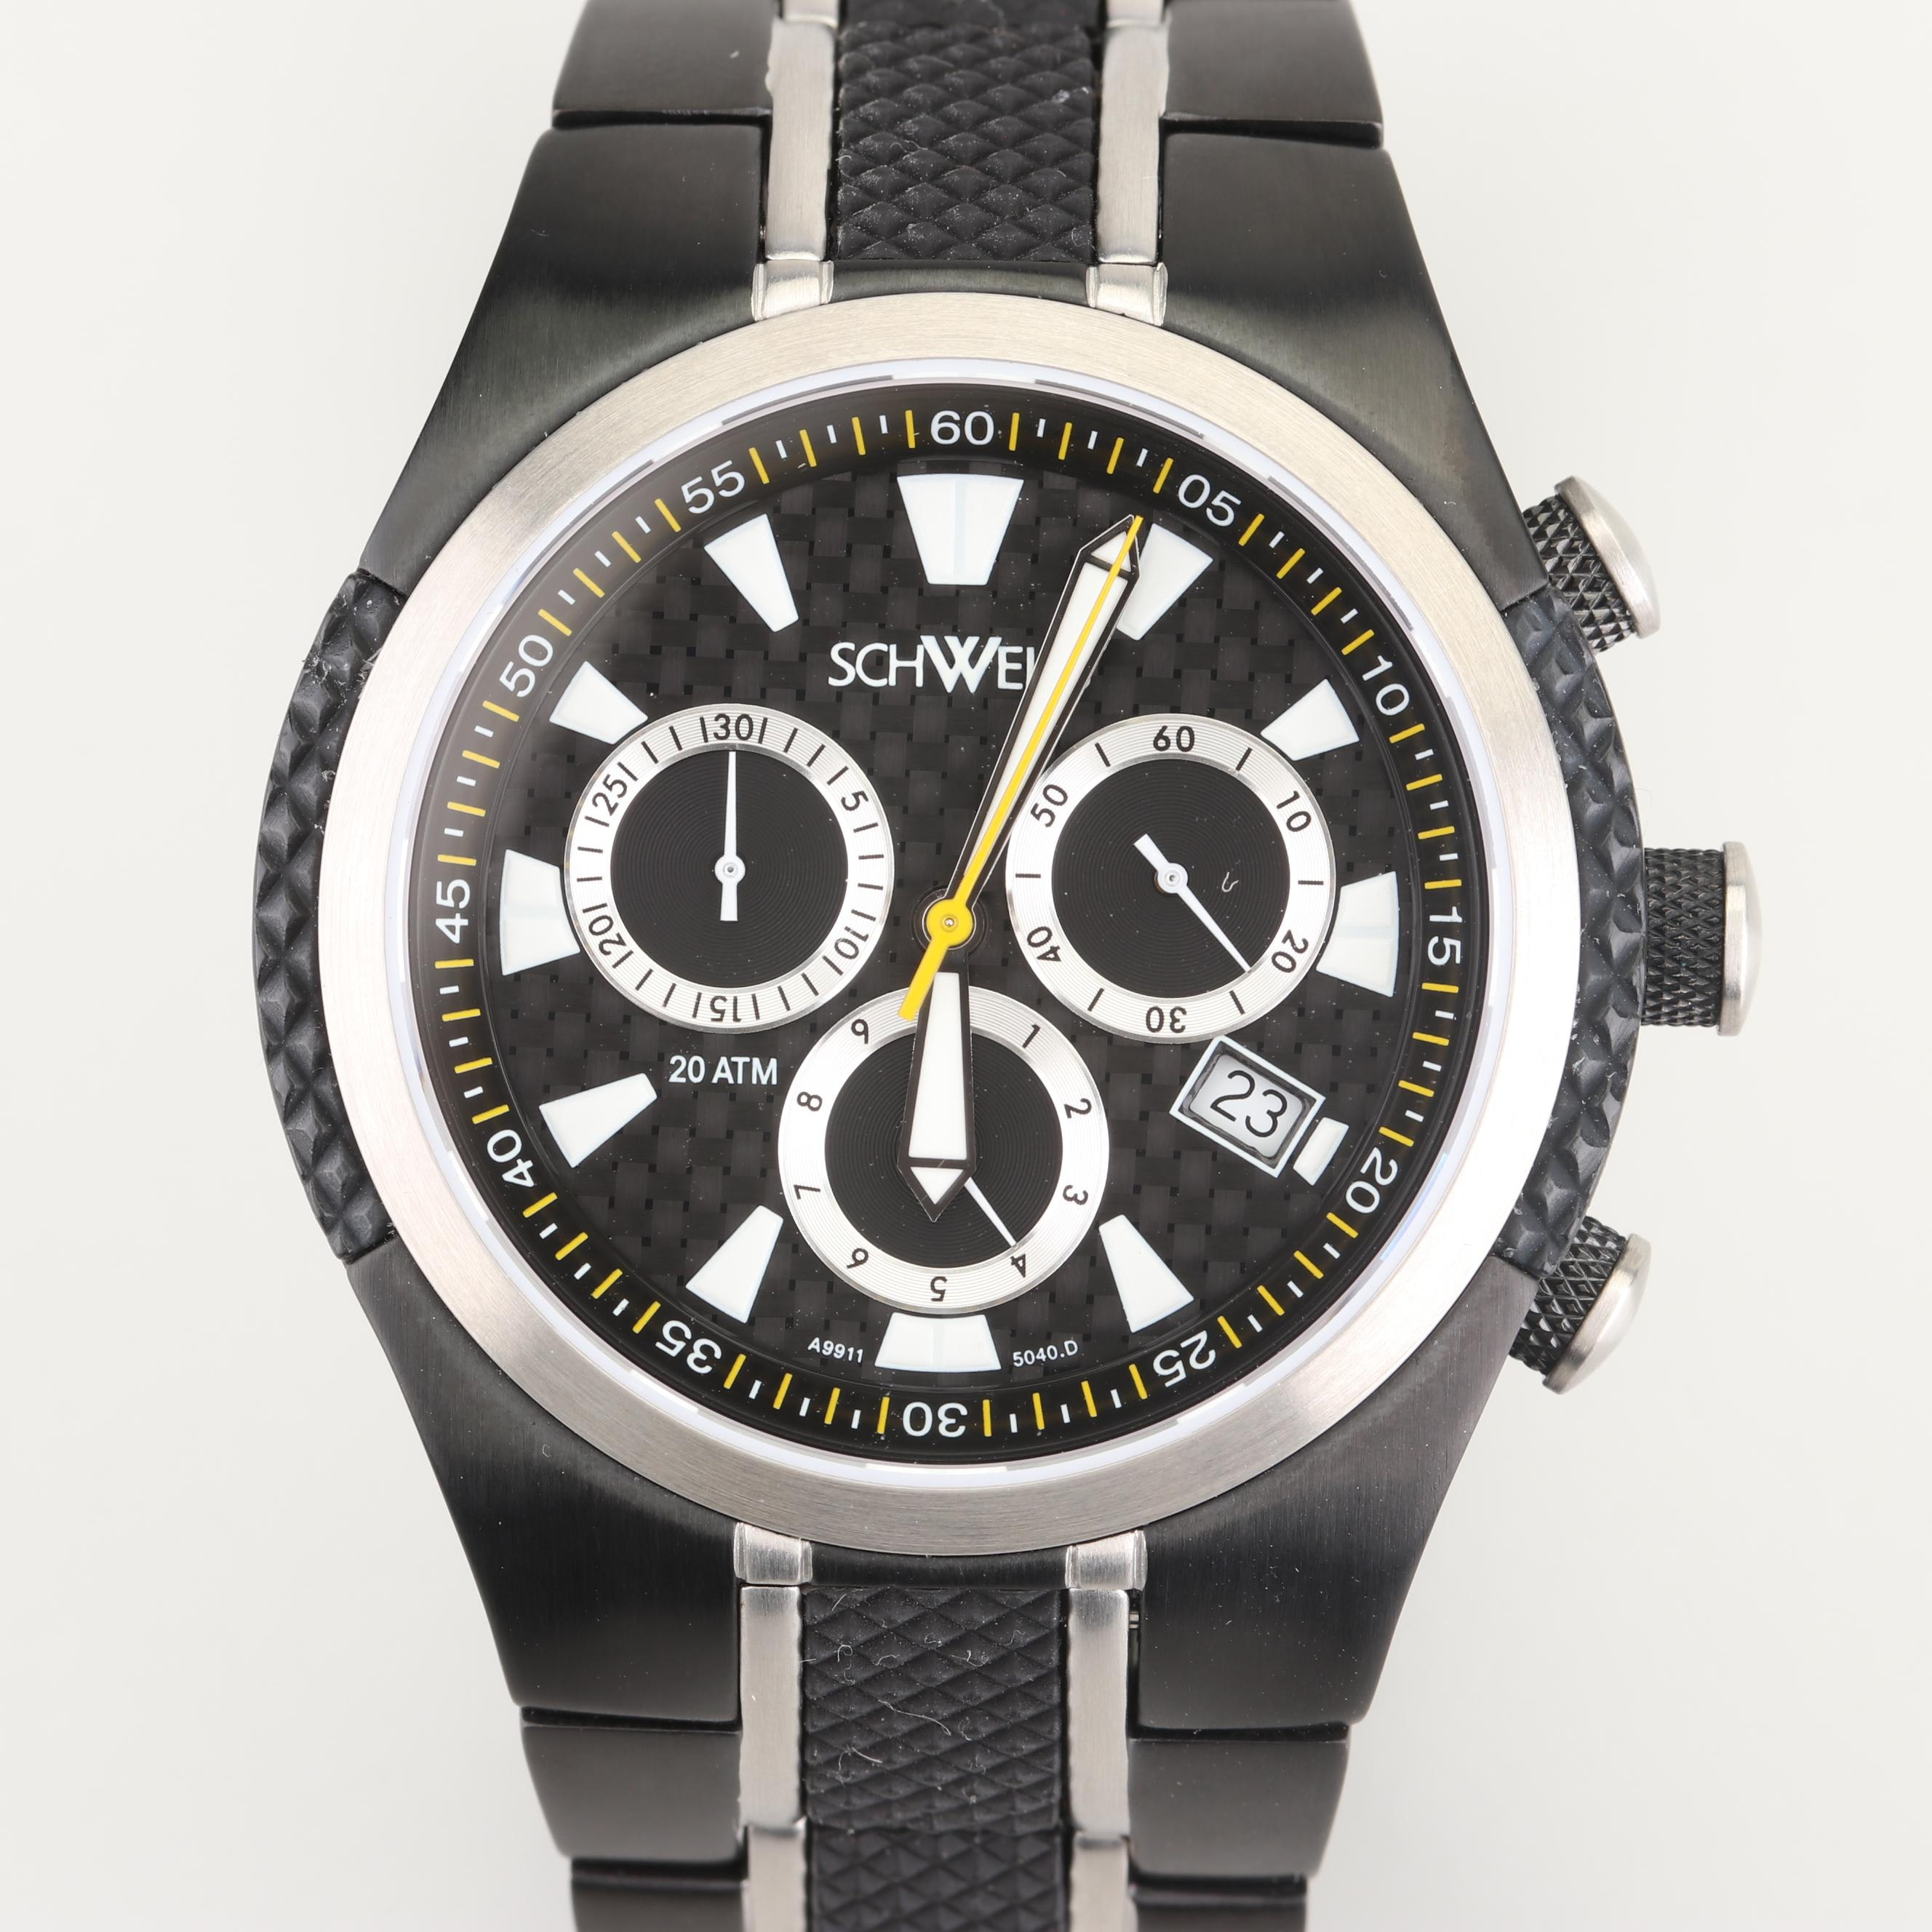 Schweiss Swiss Chronograph Black Stainless Steel and Rubber Wristwatch